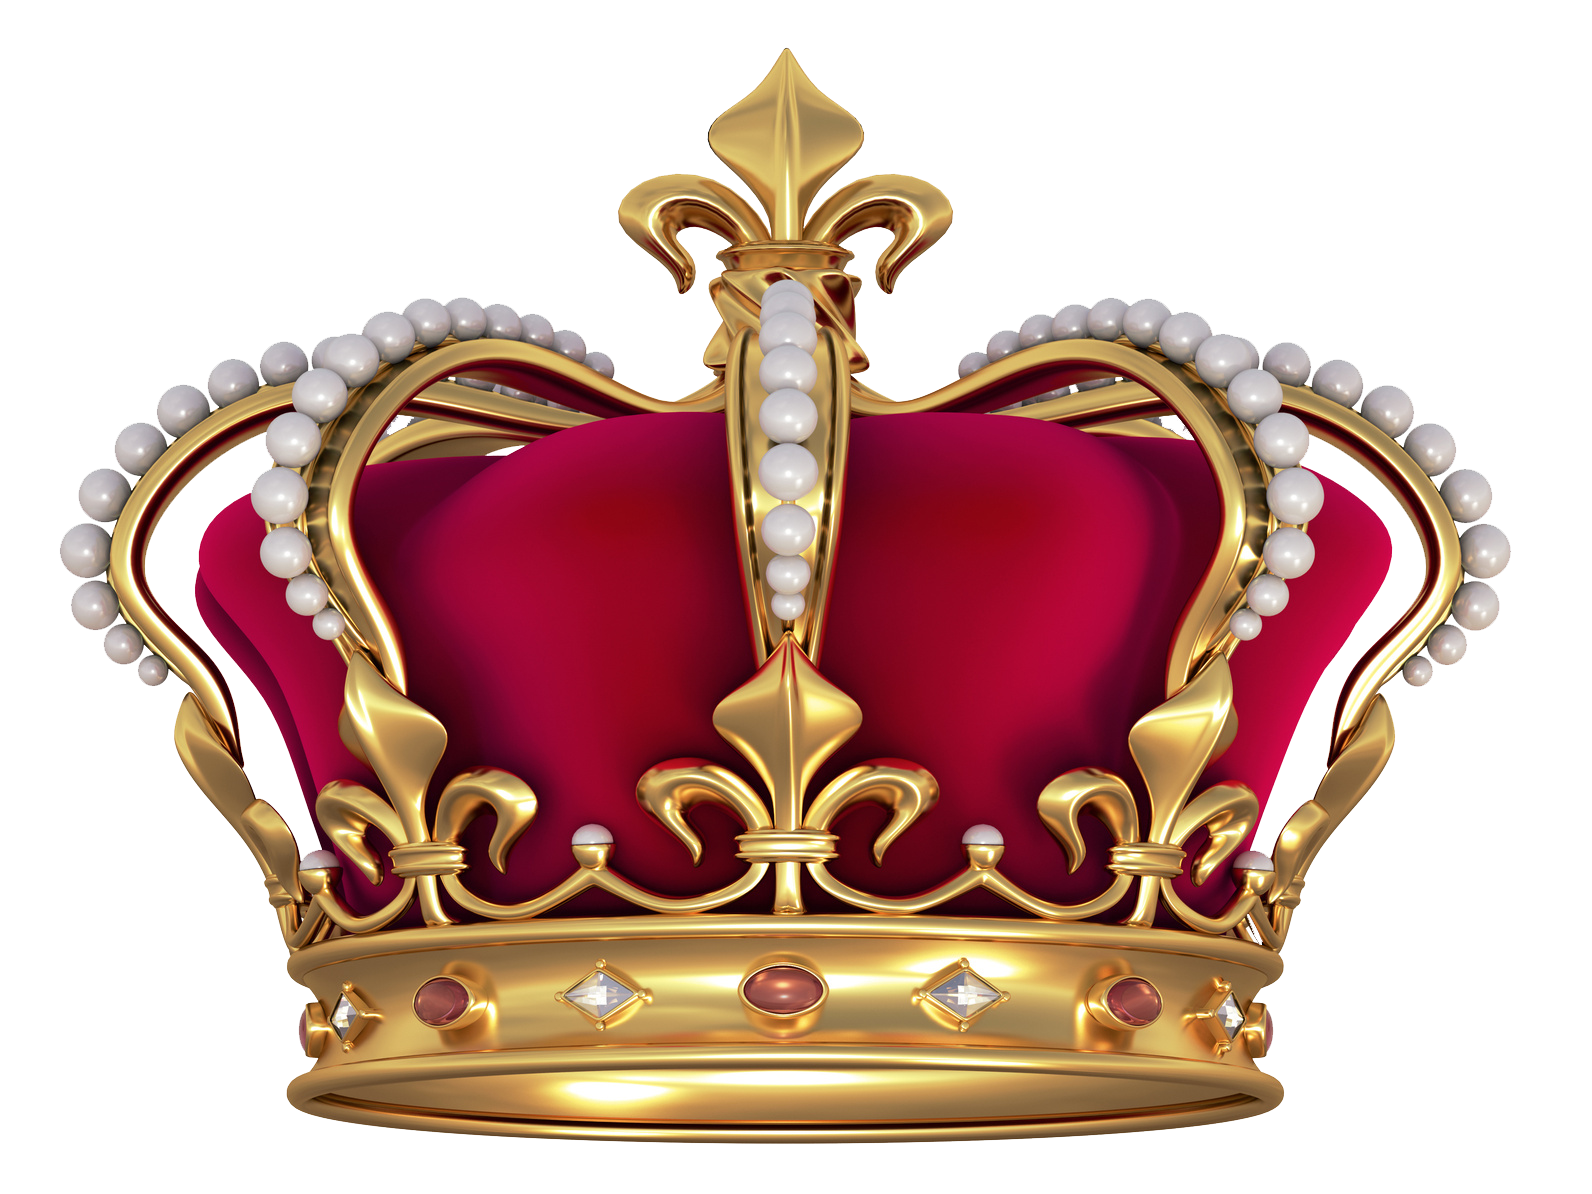 crown android k. Queen clipart royal